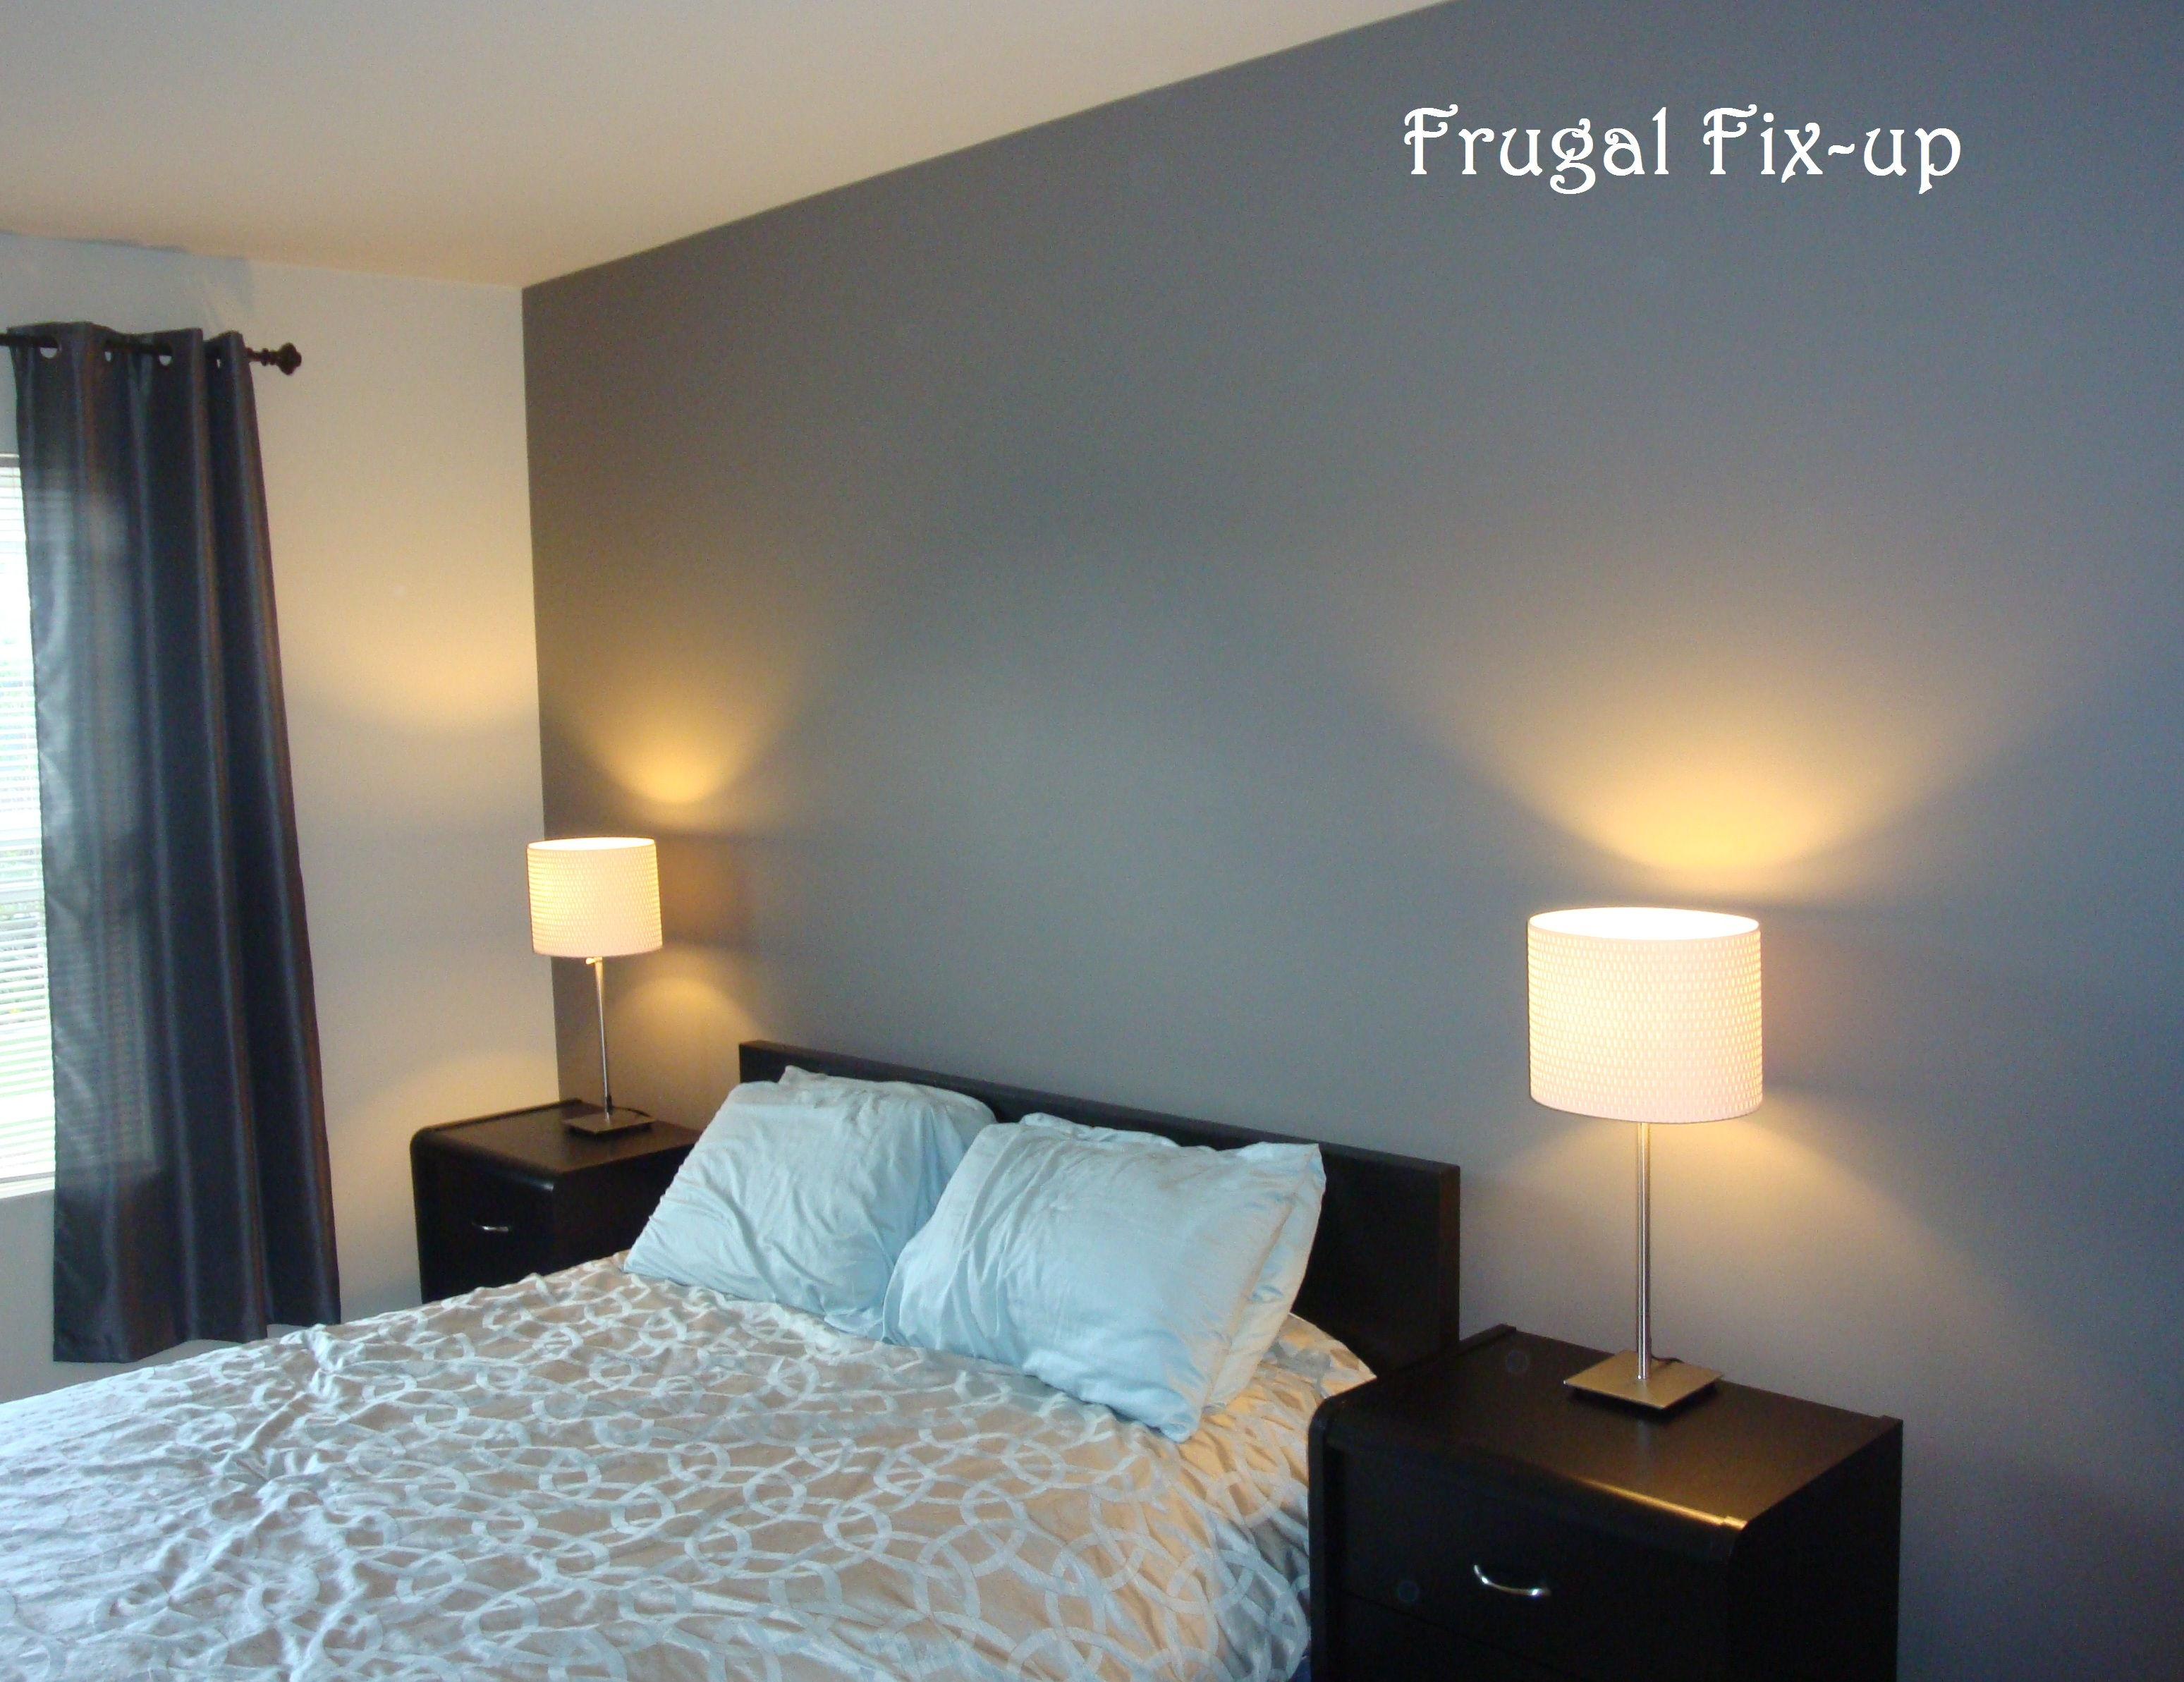 Room Redo Frugal Fix Up